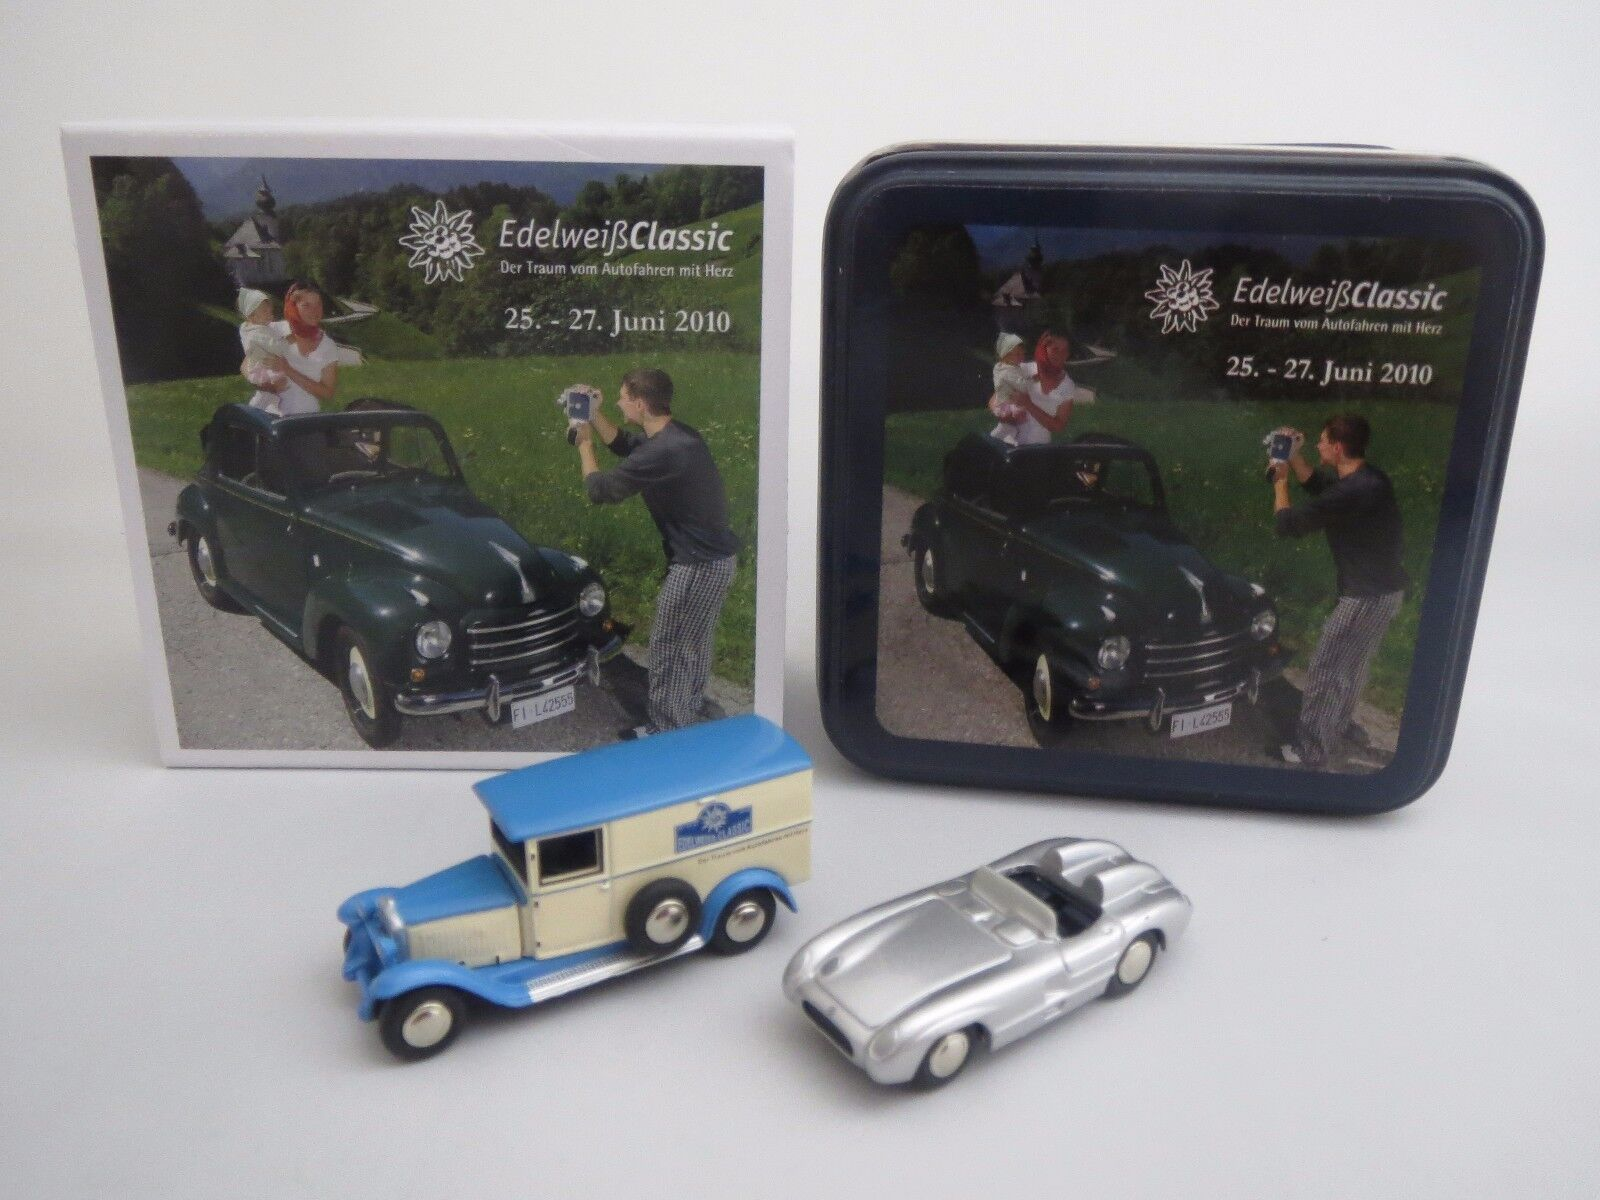 Bouèbe exclusivement-Set  EDELWEISS CLASSIC 2010  Mo 300 SLR & MB l1000 1 87 Neuf dans sa boîte